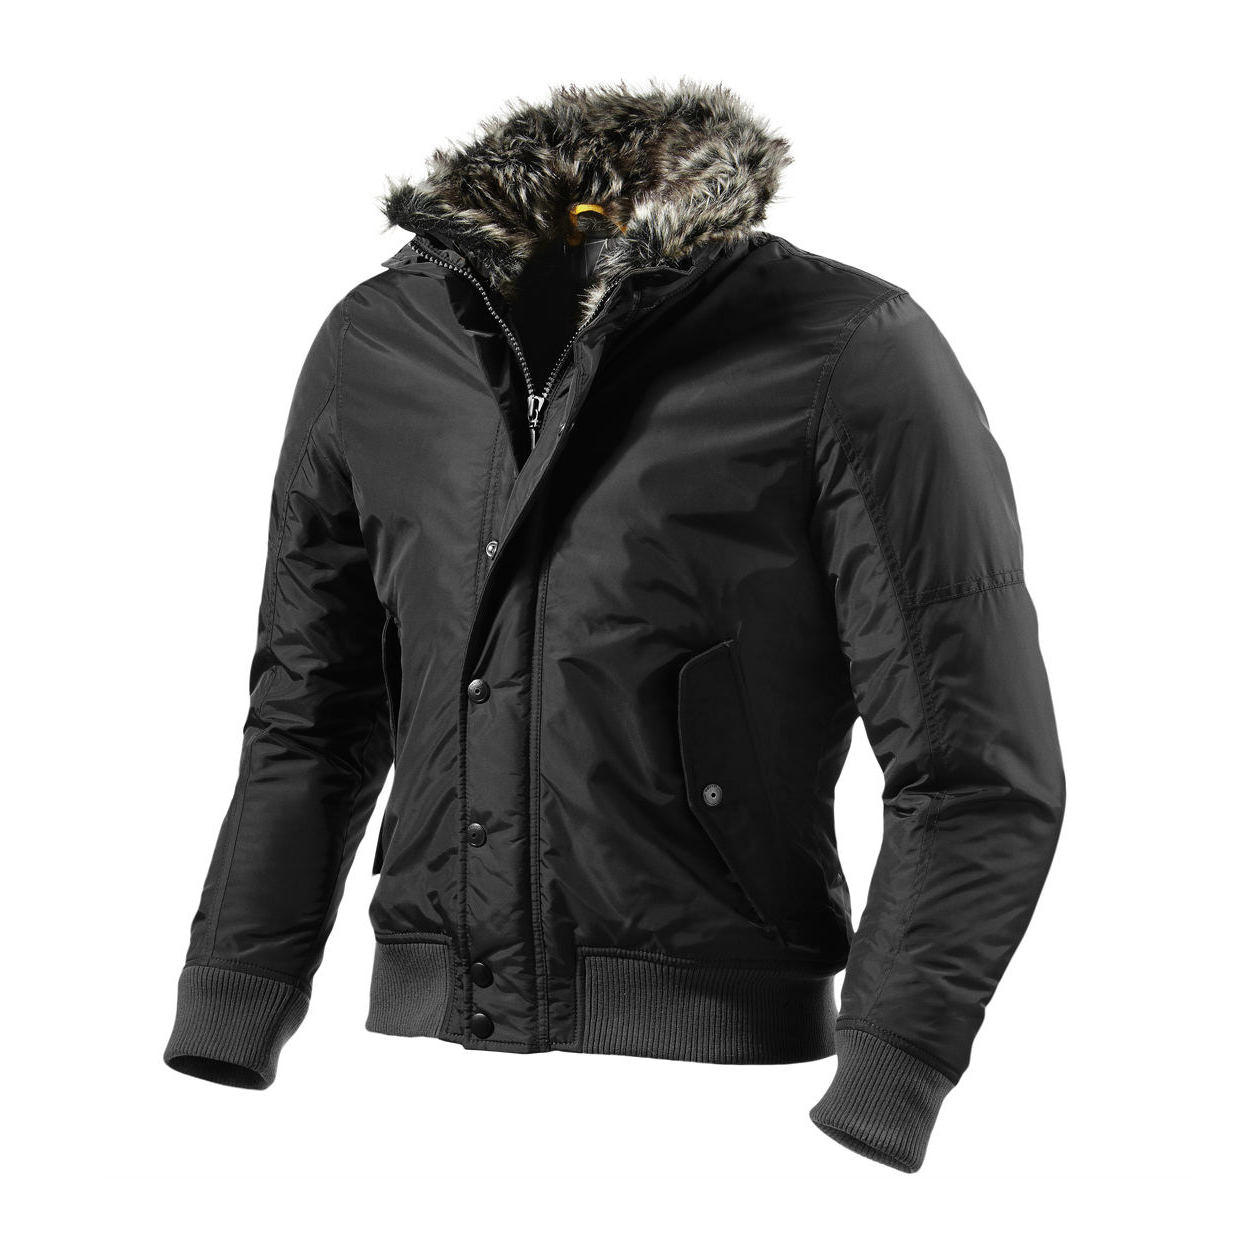 Winter Motorcycle Jacket